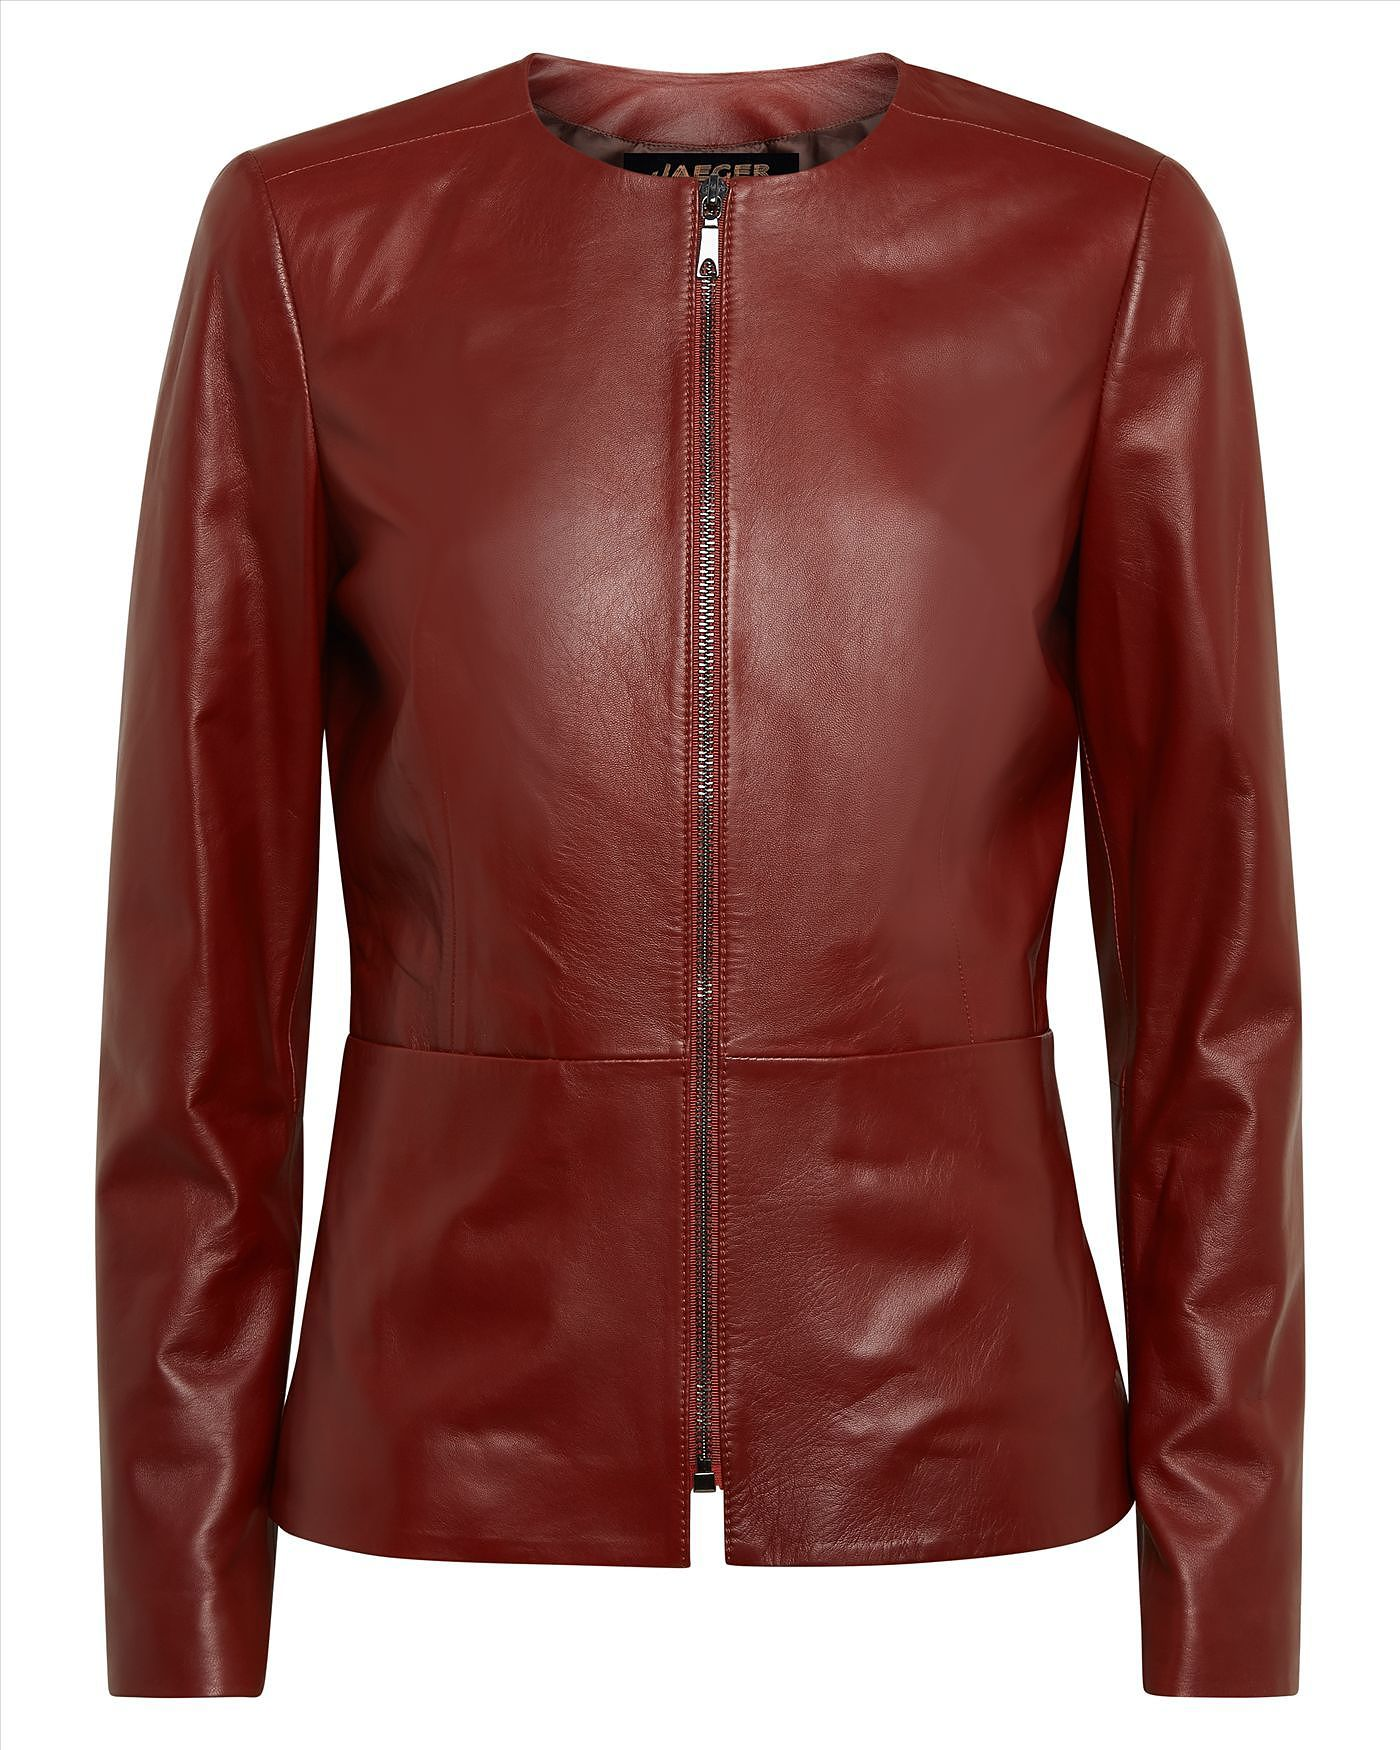 Womens brick red jacket from Jaeger £399 at